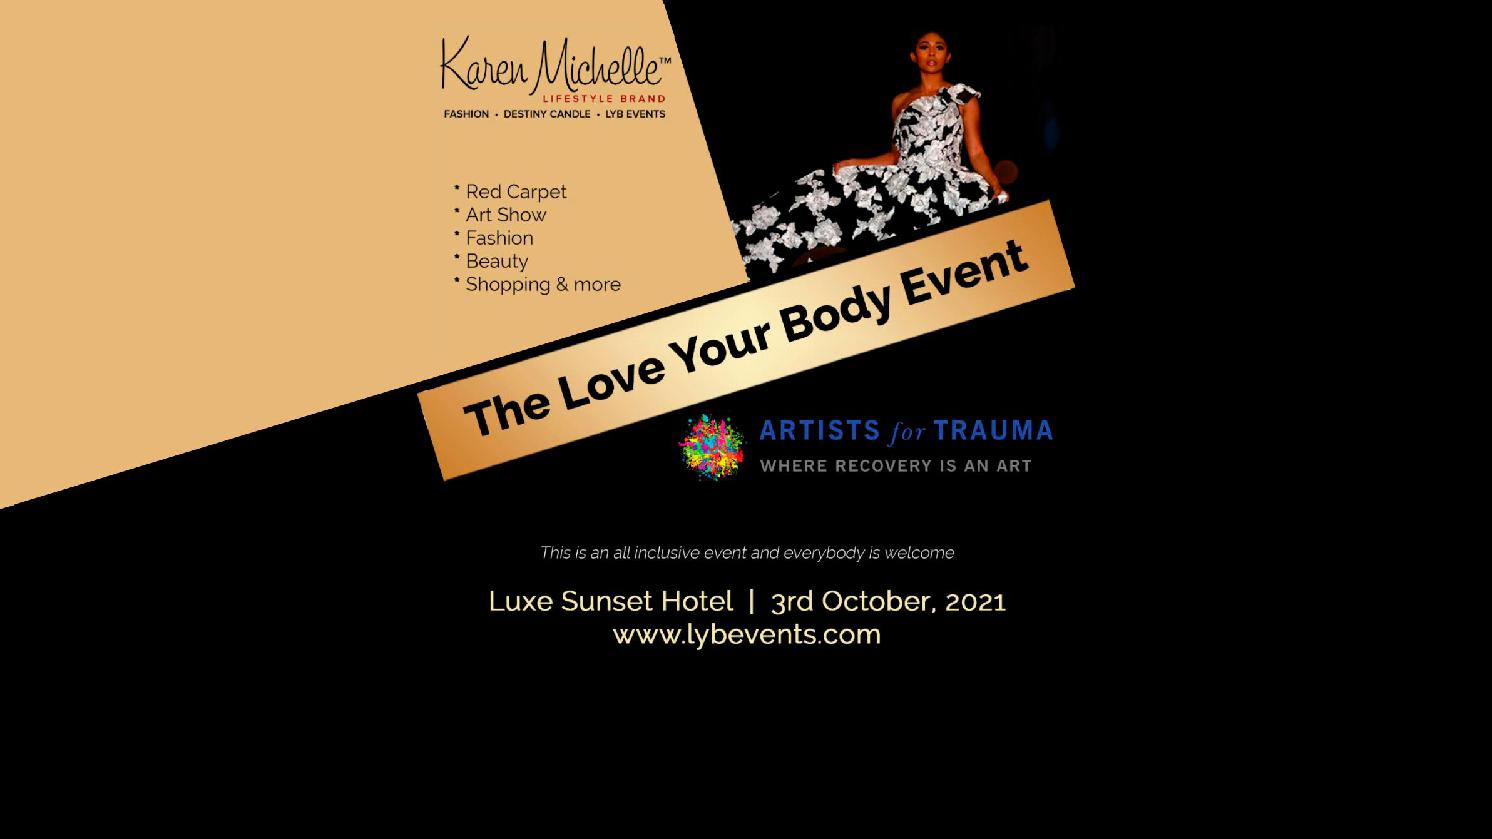 Karen Michelle & Artists For Trauma Present The Love Your Body Event